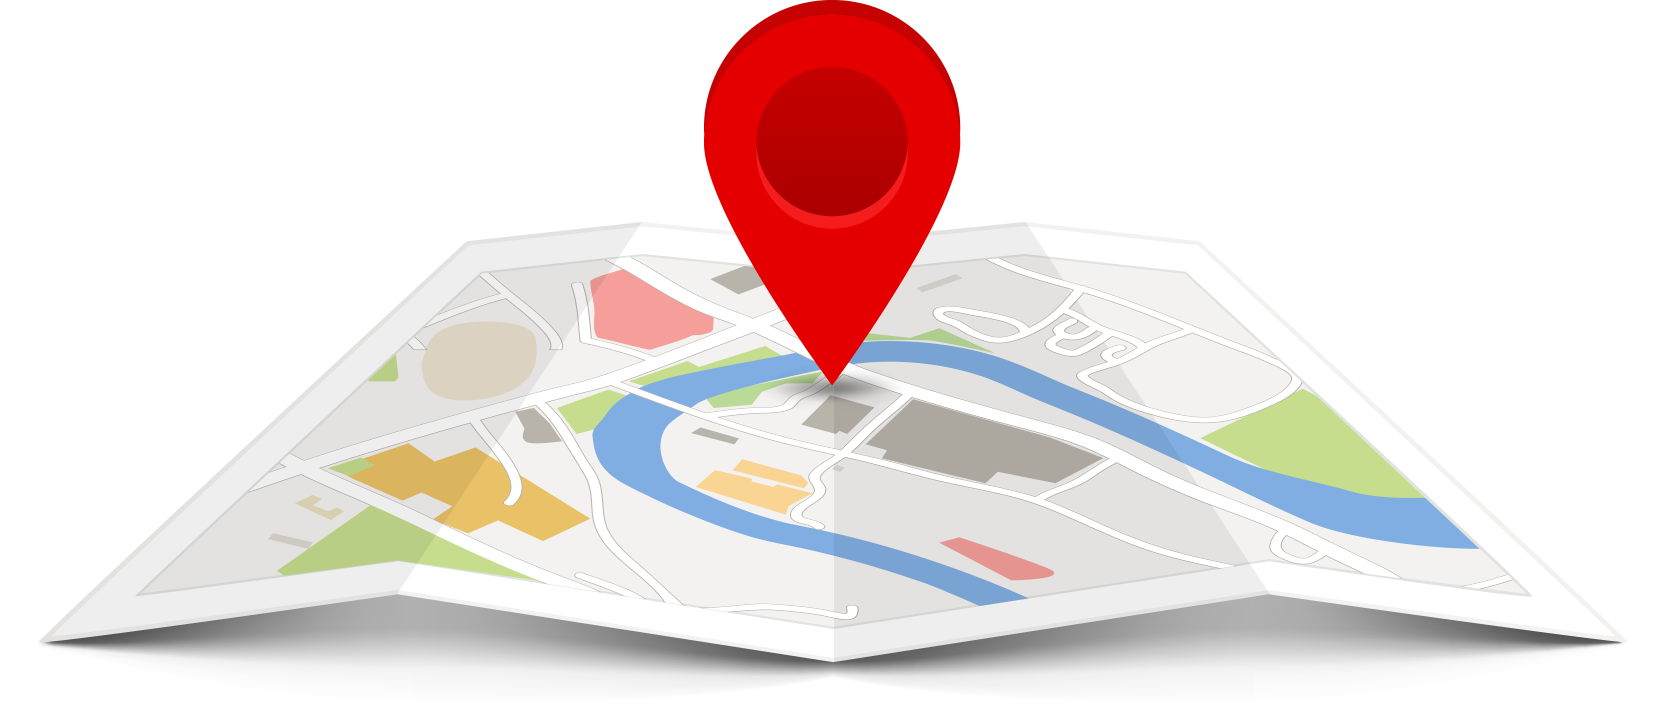 Details Related To The Gps Tracking